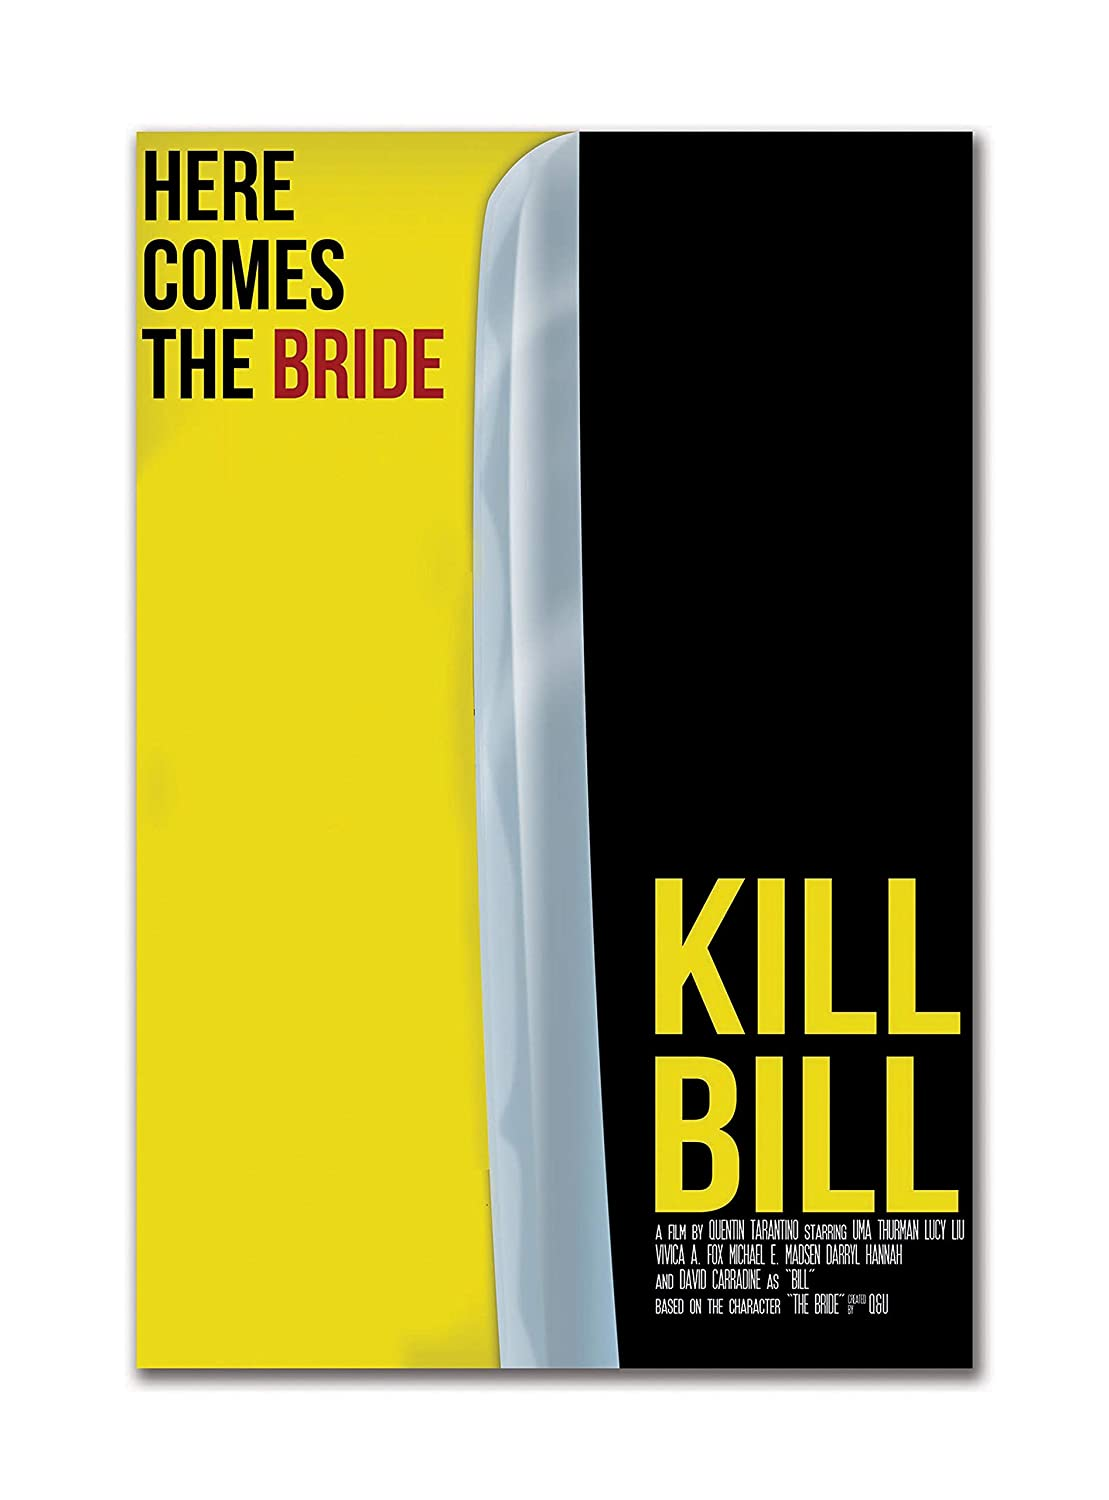 Tamatina Hollywood Movie Poster Kill Bill Volume 1 Crime Film Thriller Large Size Poster Hd Quality 18 Inches X 12 Inches 46 Cms X 30 Cms Amazon In Home Kitchen